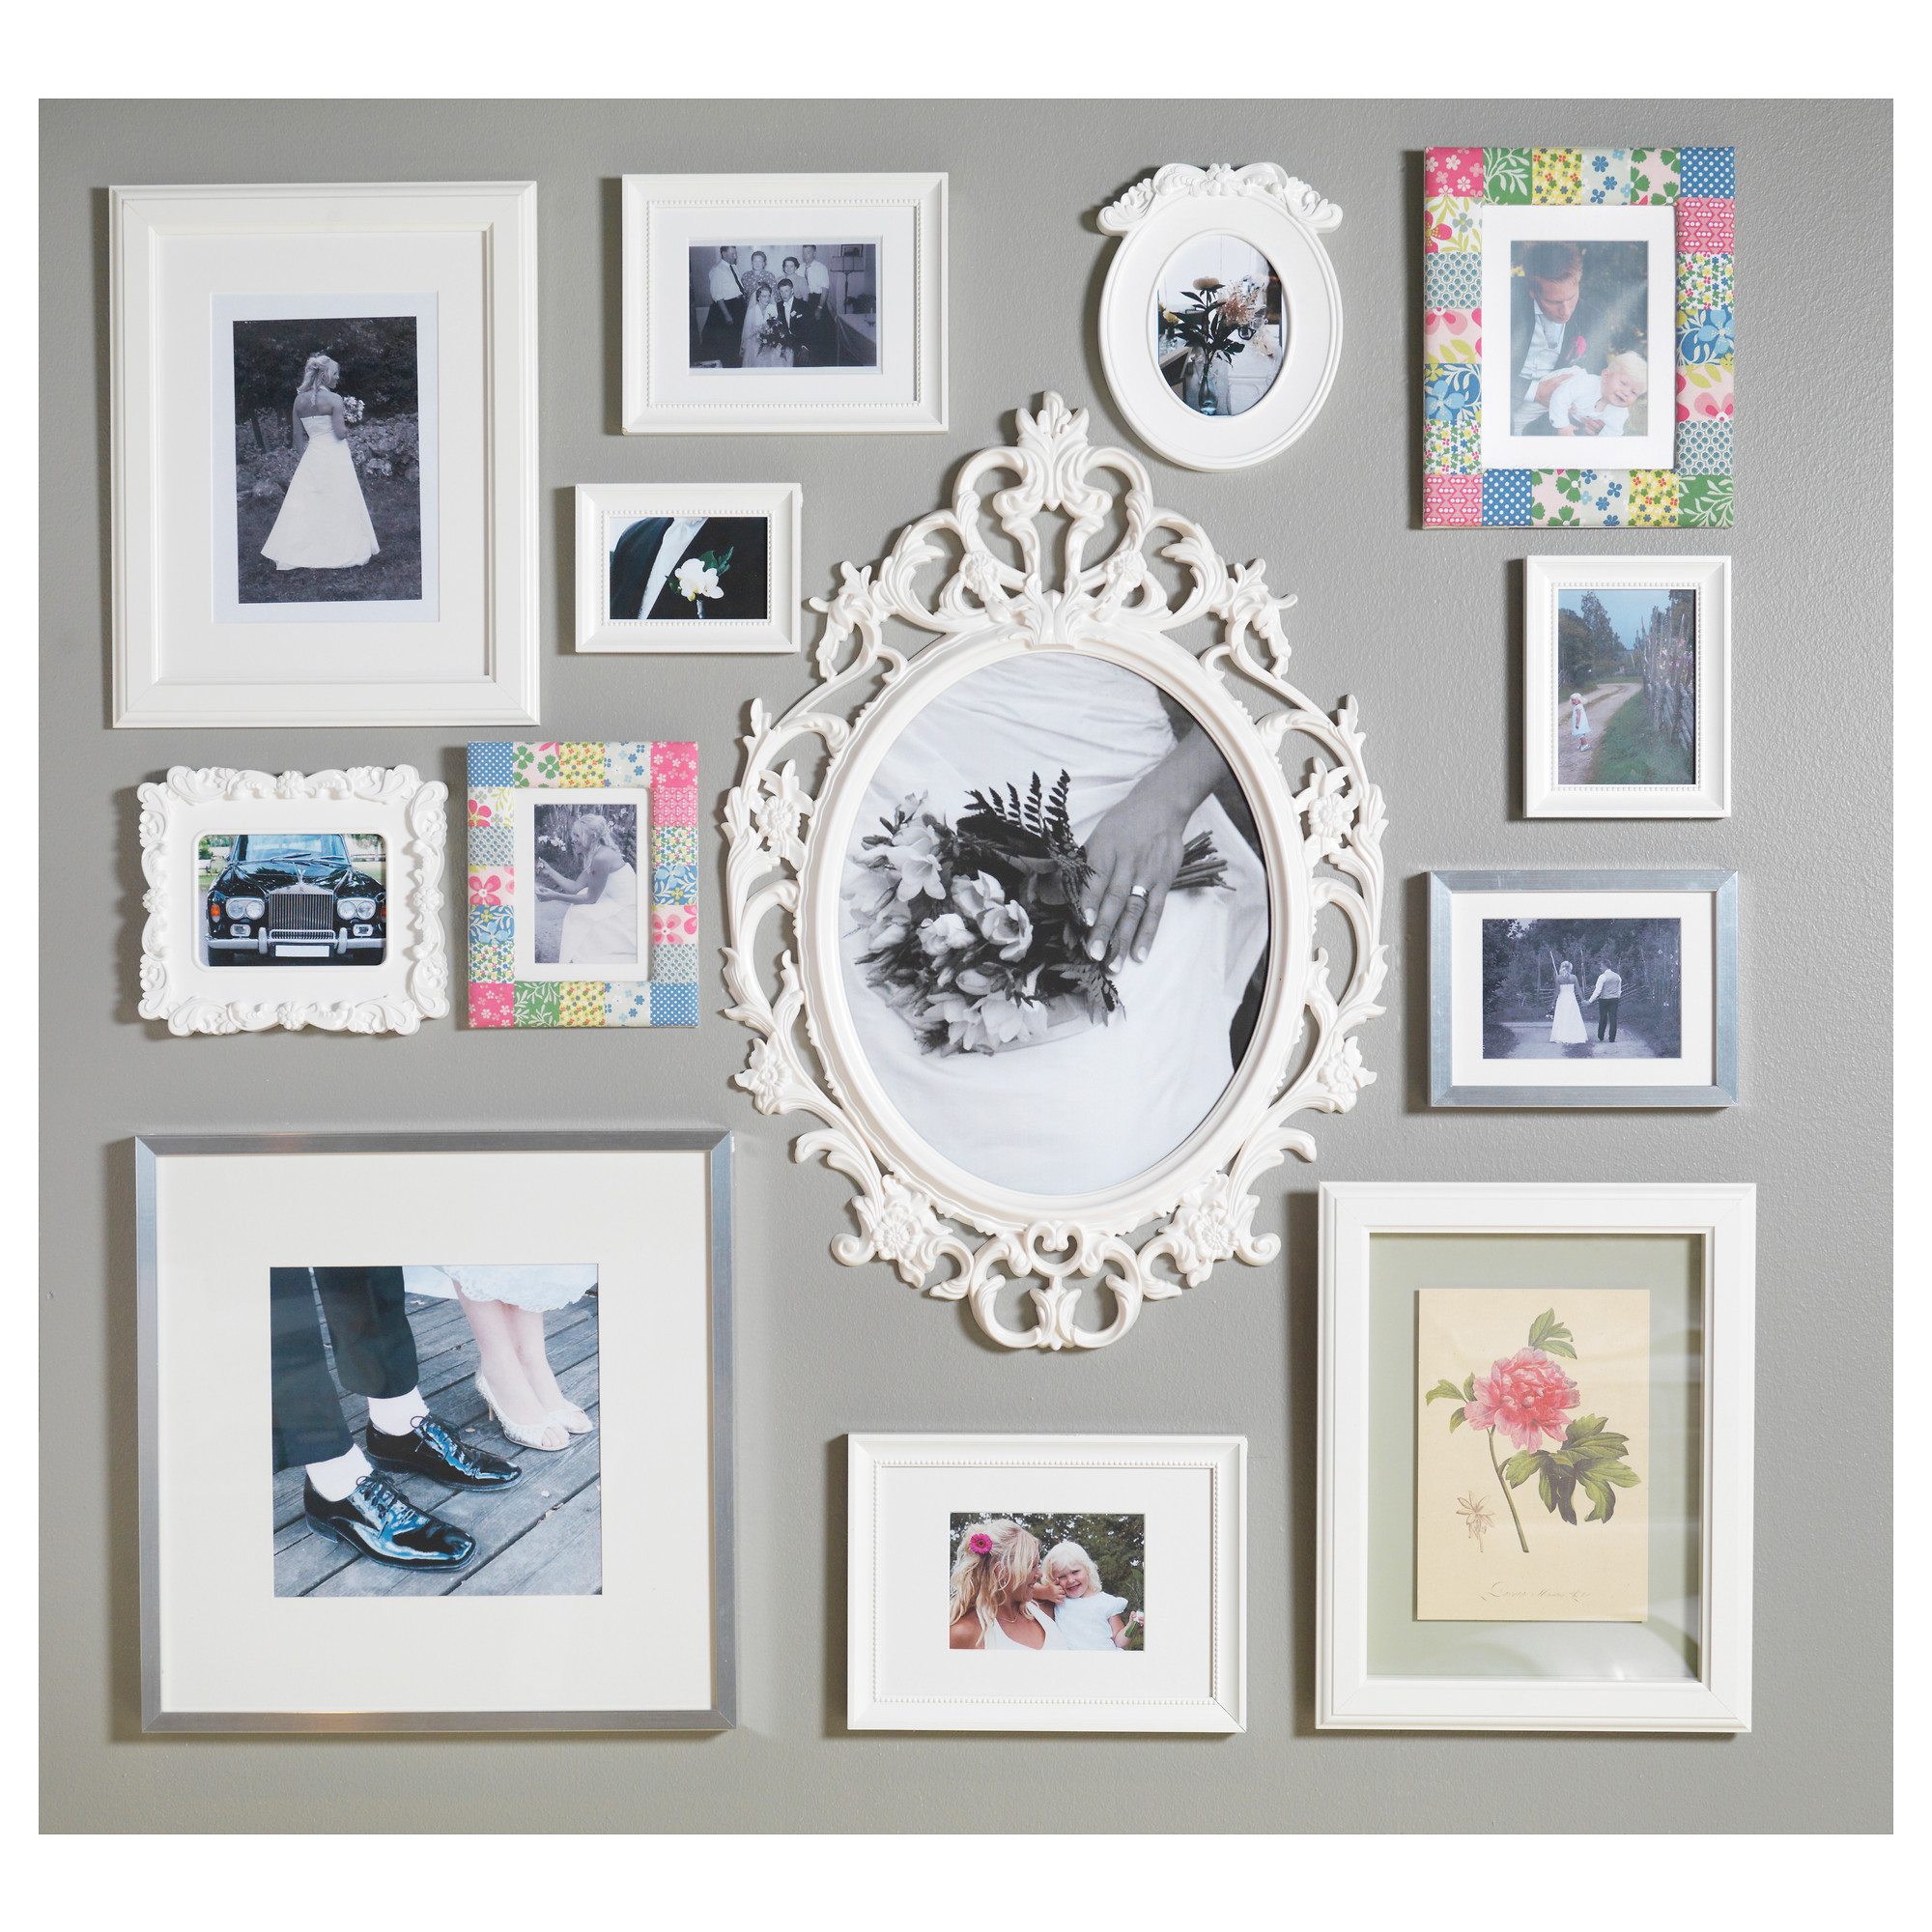 UNG DRILL Frame Oval/white IKEA | Photo wall, Walls and Gallery wall